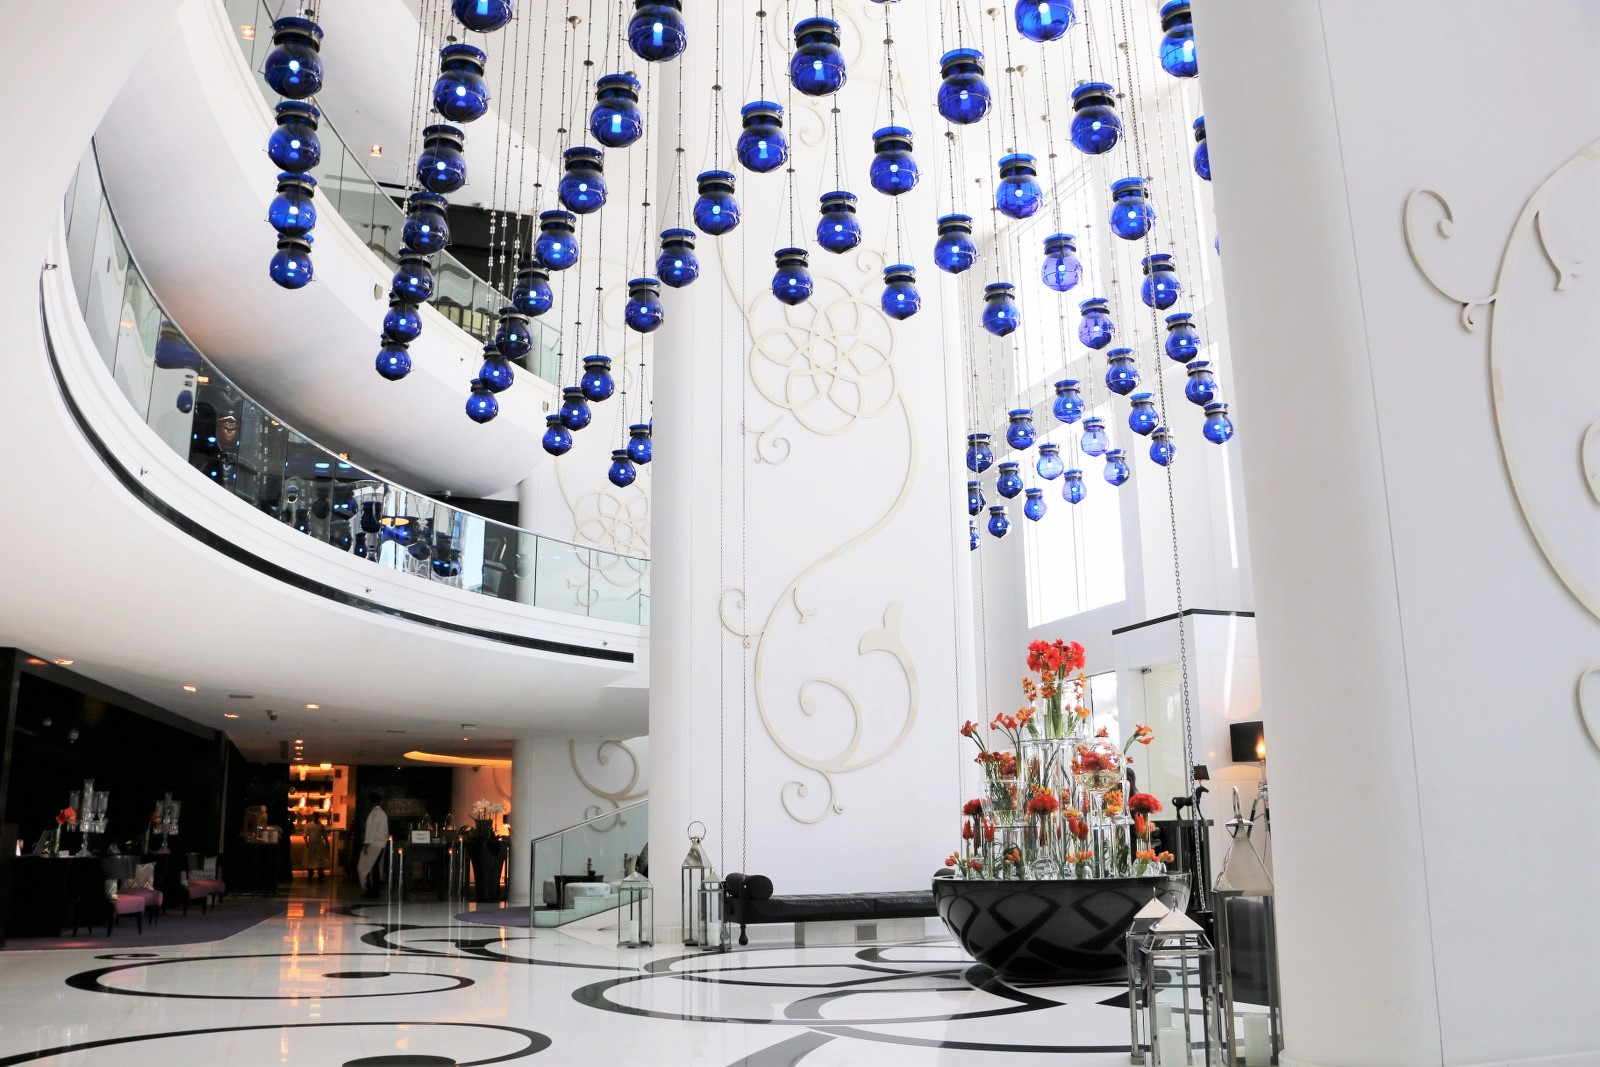 Casual Glamour Meets Urban Energy As The First Luxury Lifestyle Hotel Opens In Qatar Located At West Bay Of Doha W Has Got Your Insider Access